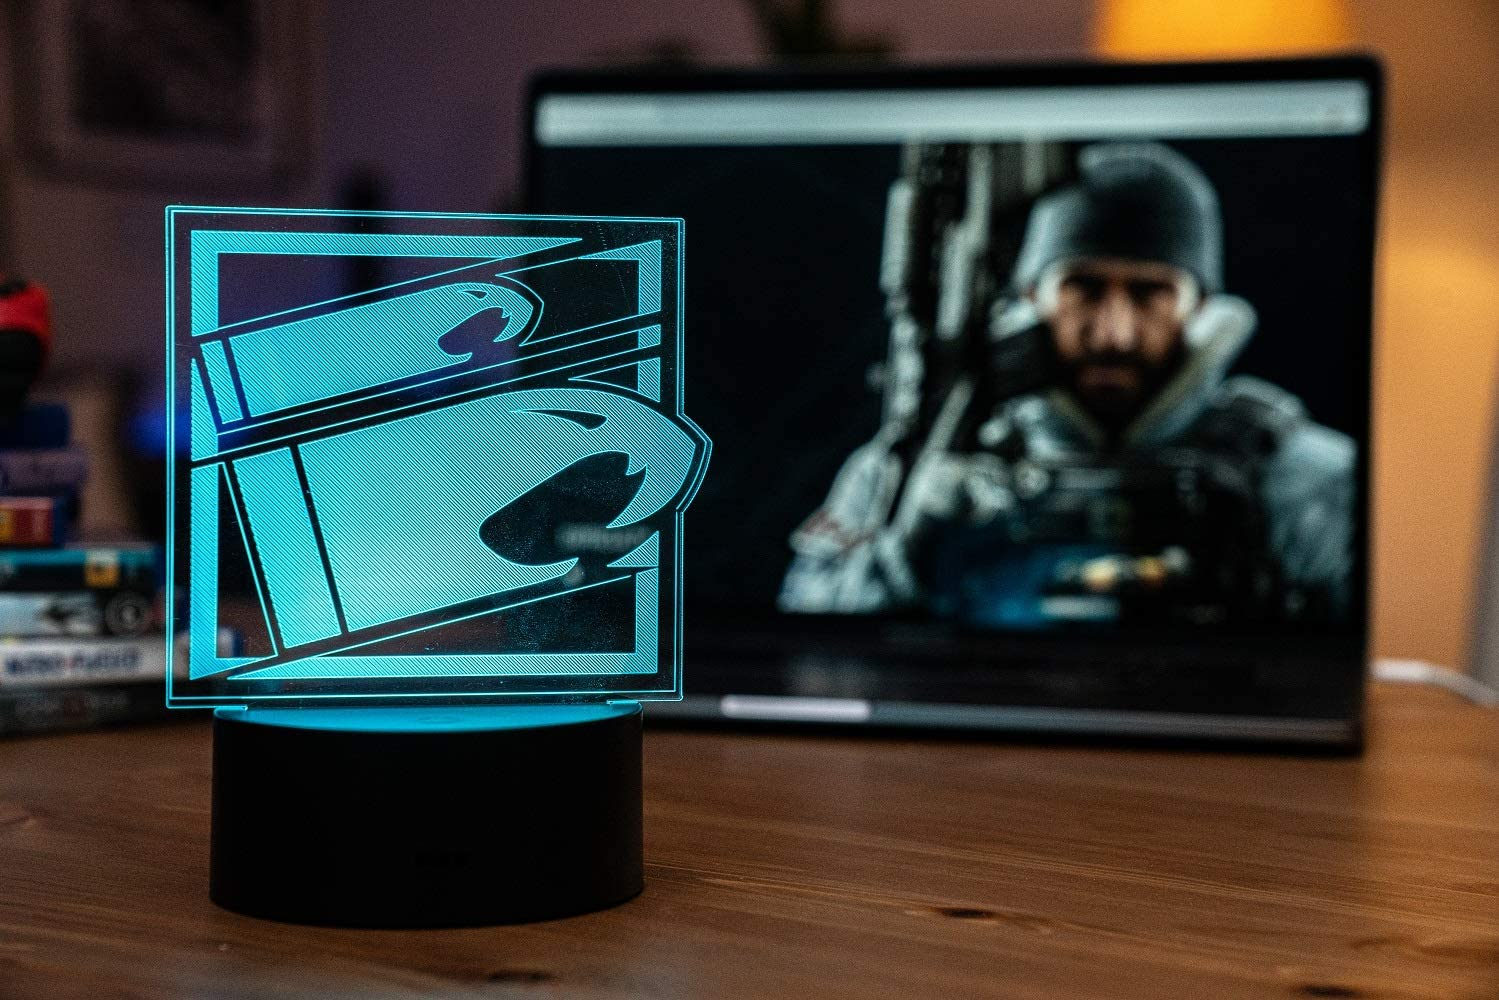 Six Siege LED Lamp - Buck Operator - Rainbow Six Siege Decor for The Bedroom or Gaming Studio - Color Changing LED Nightlight Great for Cosplay Photoshoots with Any R6 Character